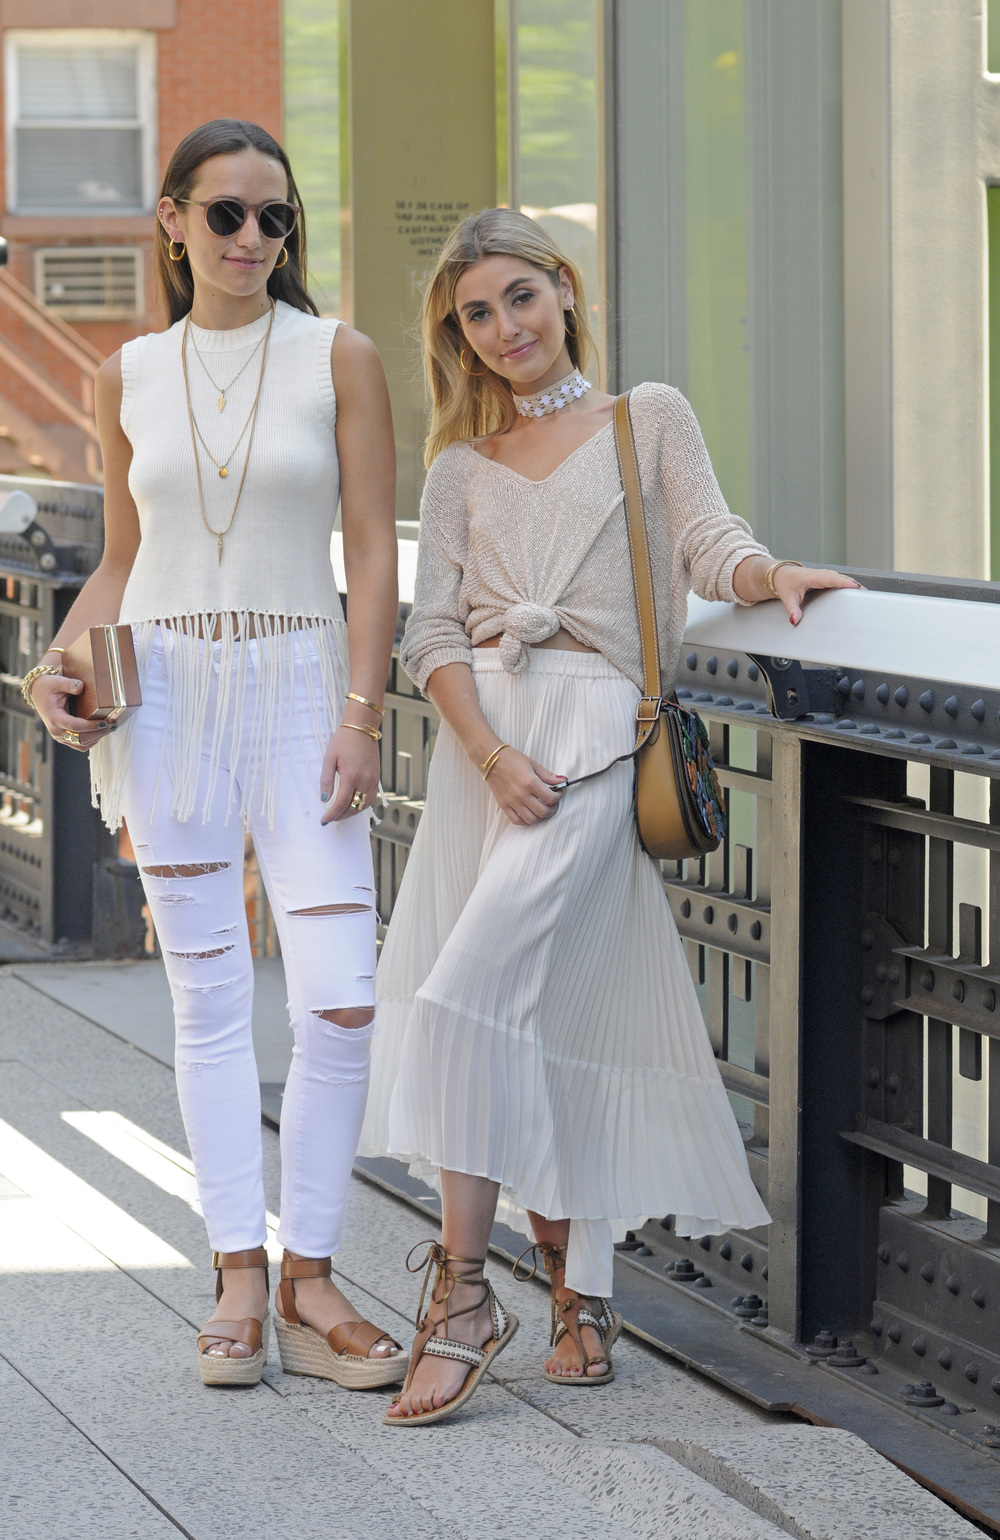 YIN 2MY YANG BICKLEY SISTERS NEUTRALS N KNITS